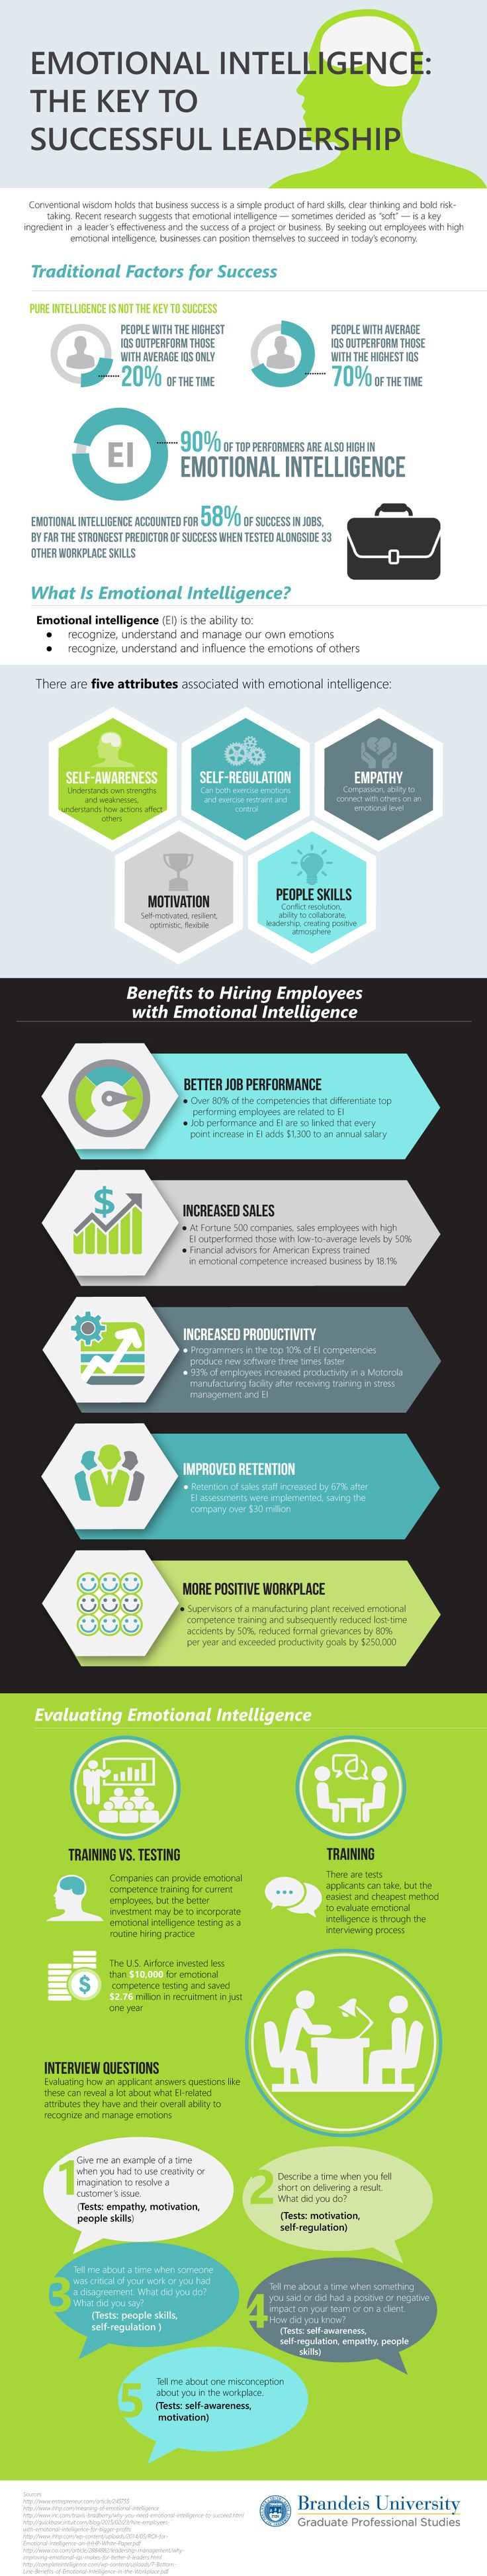 receptionist sample resume%0A Emotional Intelligence  The Key To Successful Leadership  Infographic   Leadership